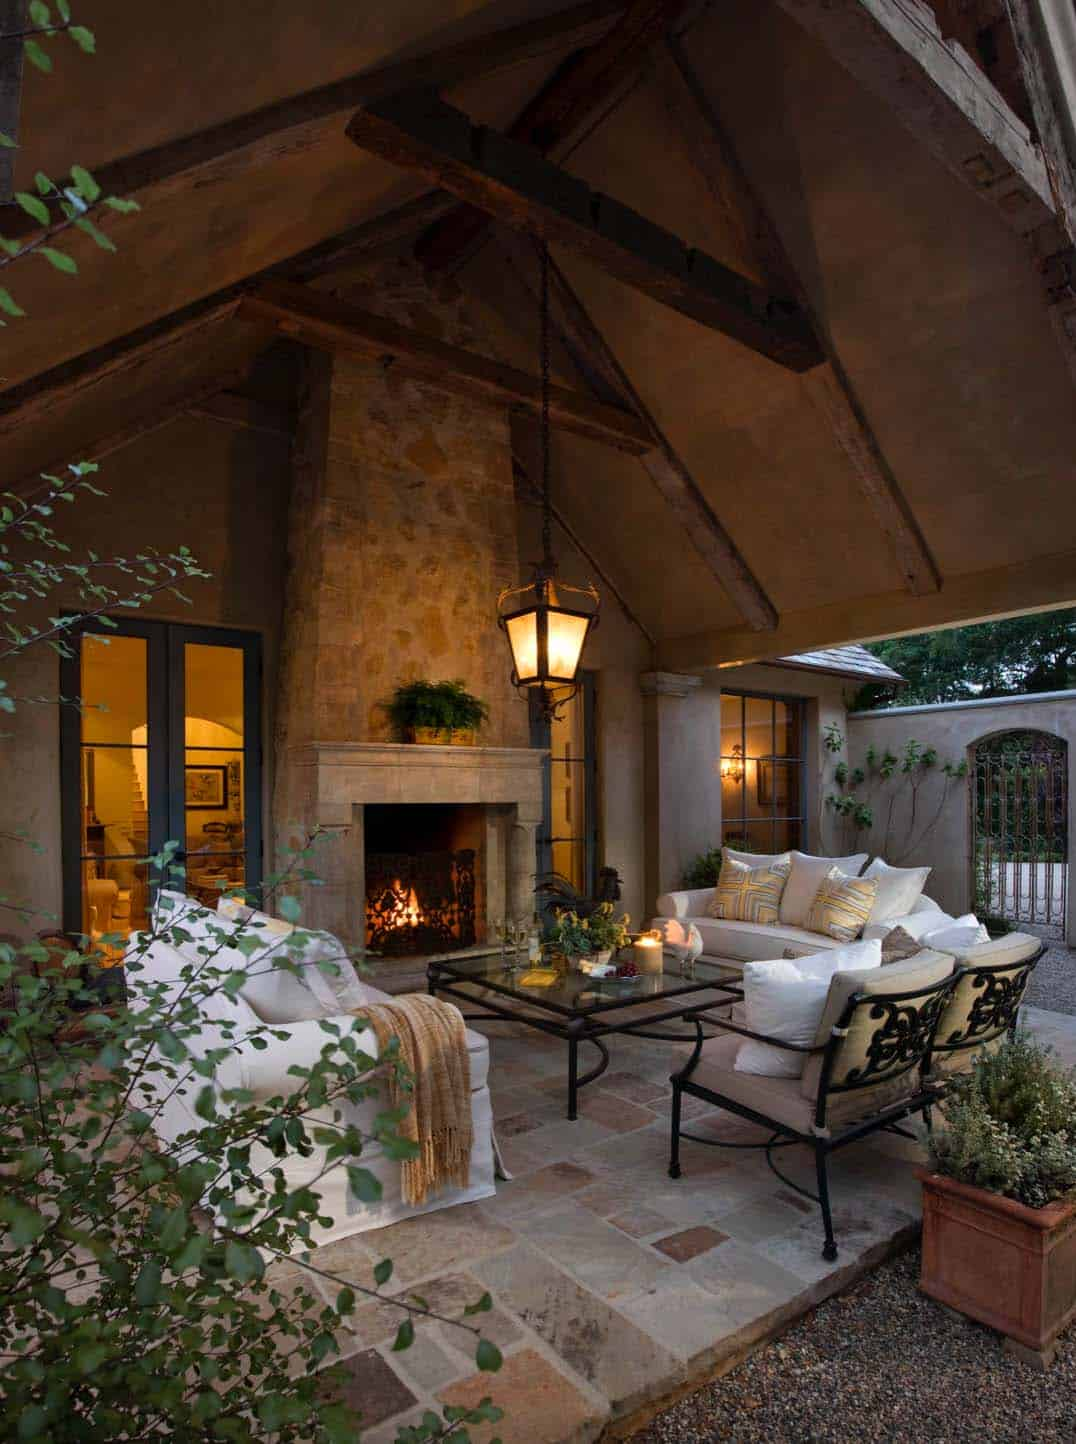 30+ Irresistible outdoor fireplace ideas that will leave ... on Outdoor Fireplaces Ideas  id=87163